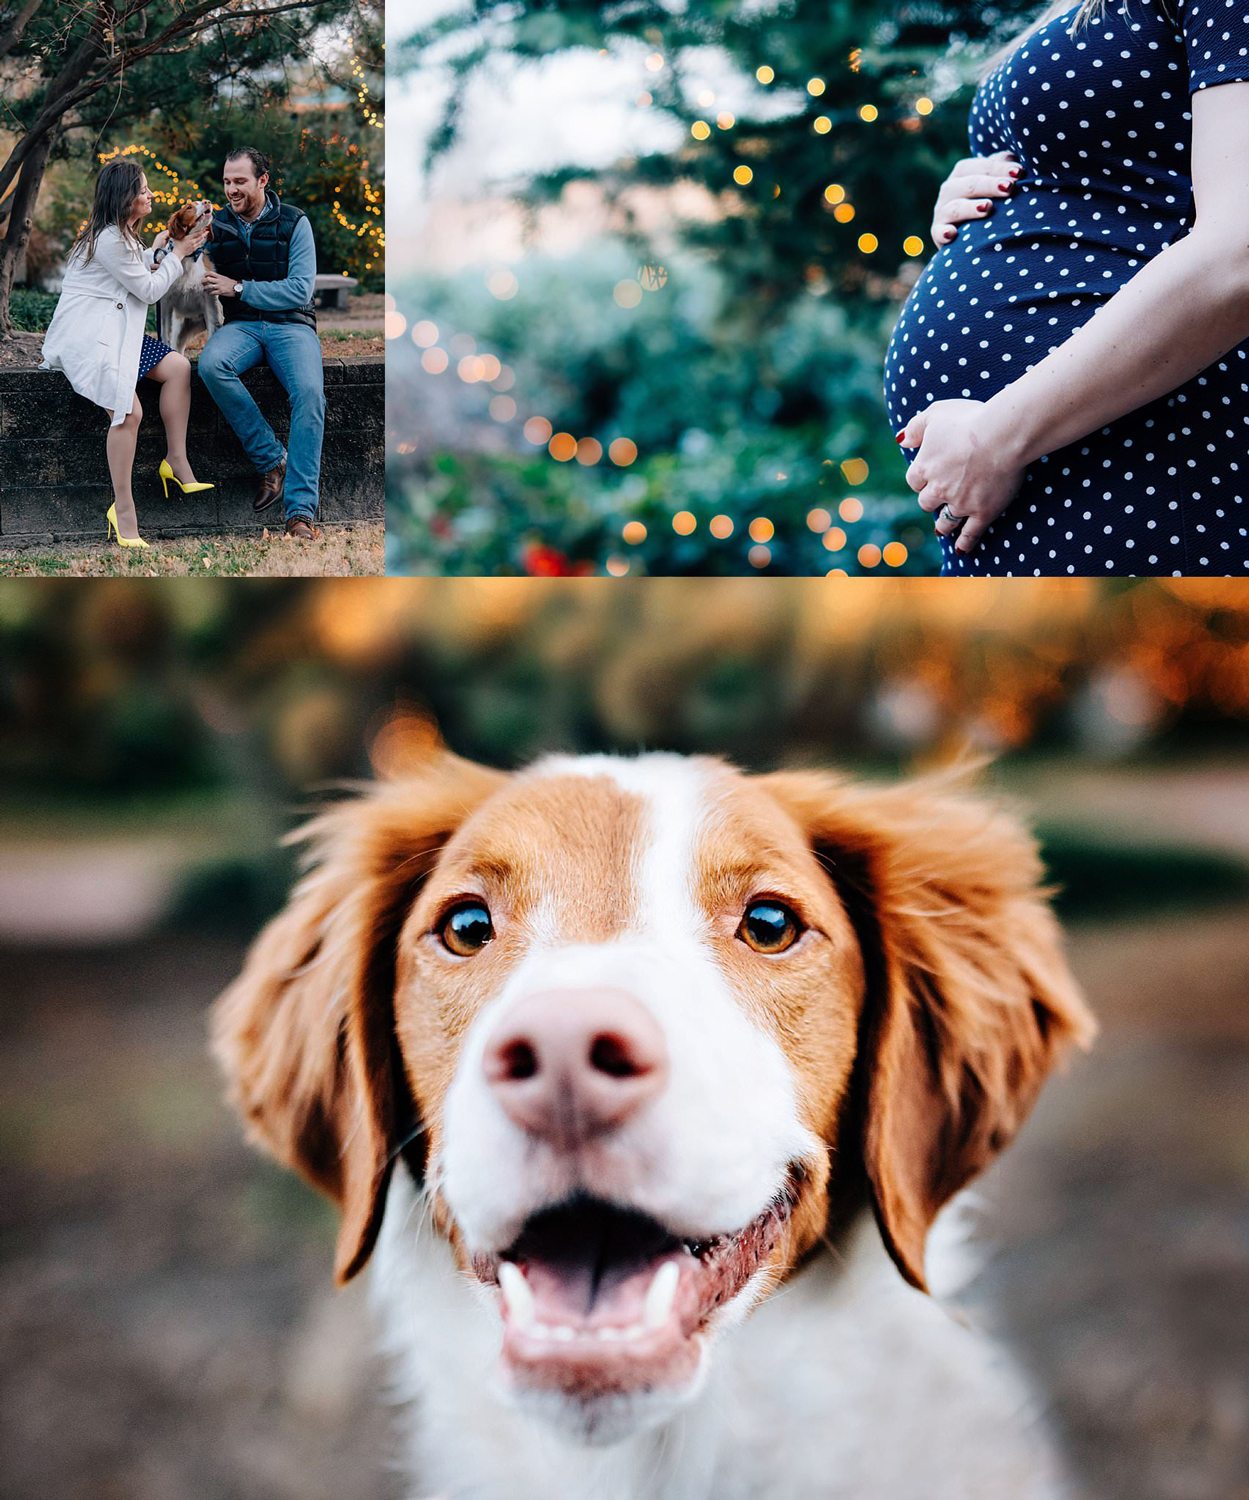 norfolk-maternity-newborn-photographer-couple-with-brittany-spaniel-photographed-downtown-norfolk-melissa-bliss-photography.jpg